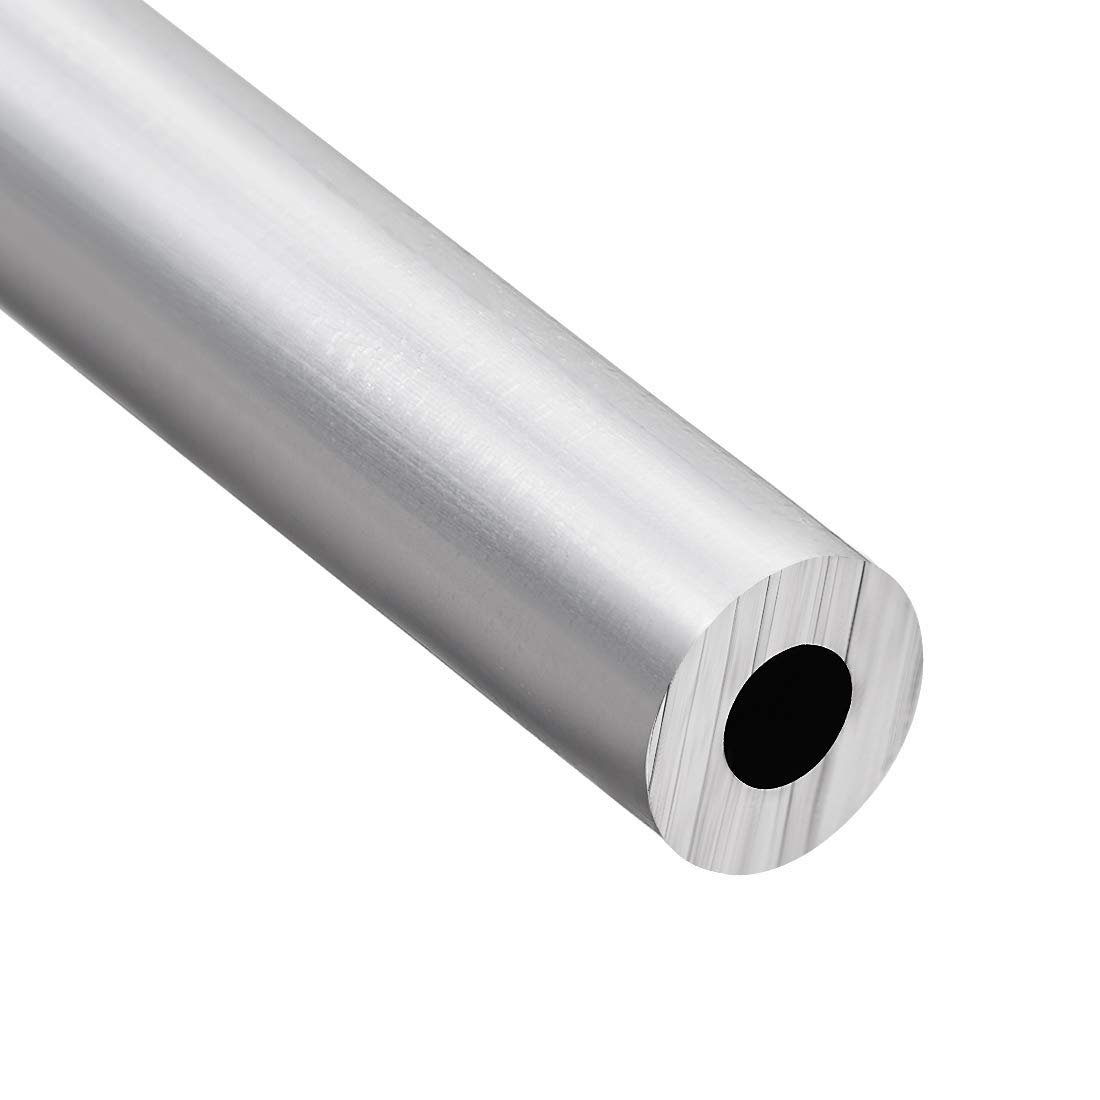 6063 Seamless Straight Round Aluminum Tube 1 feet in Length 0.195 inches ID 0.429 inches Outside Diameter